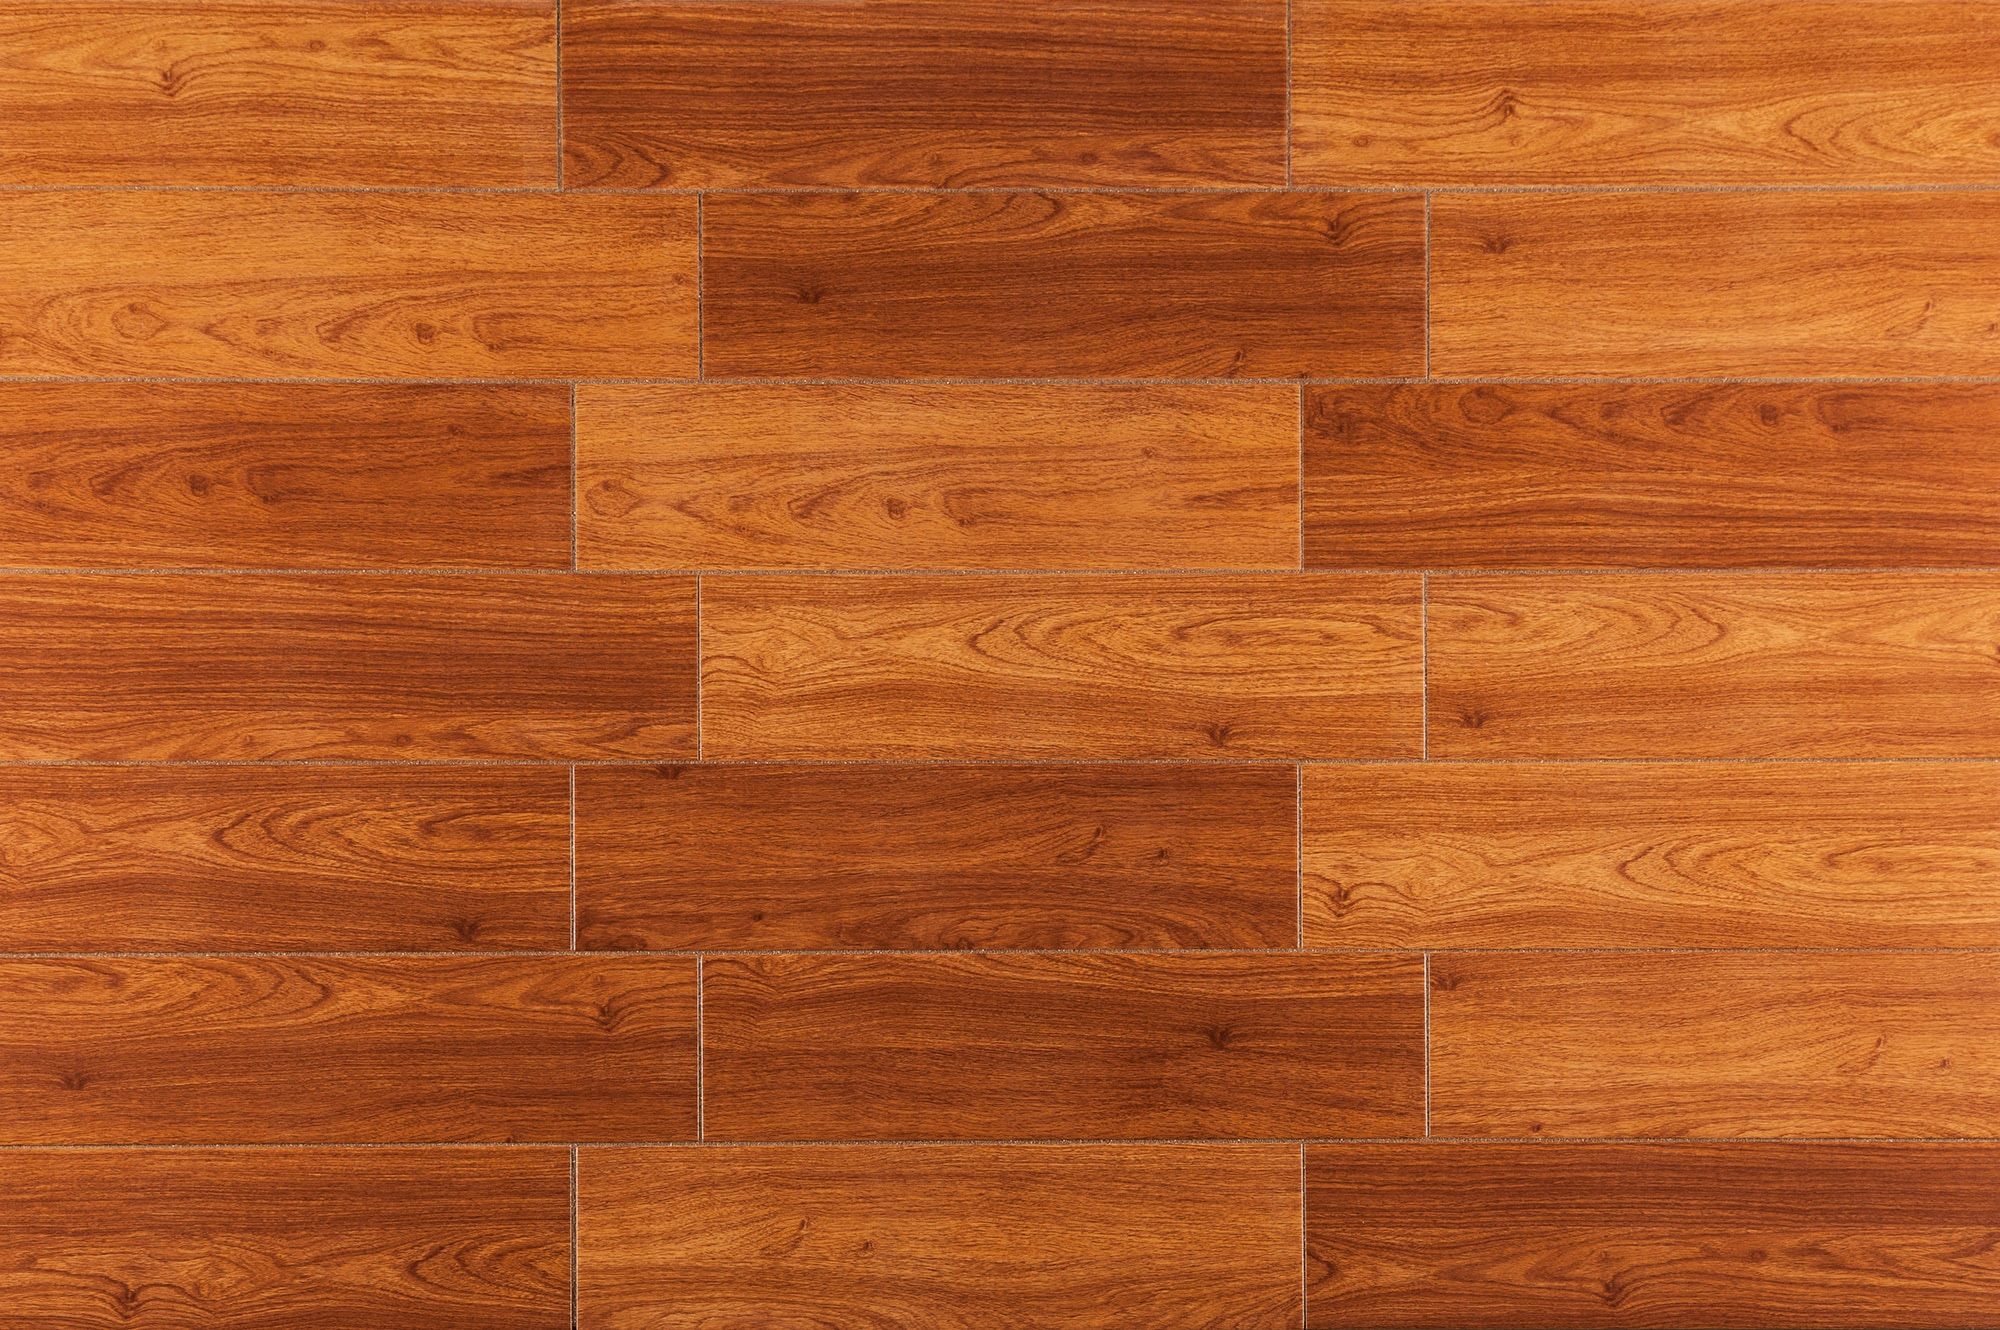 Salerno ceramic tile american wood series red oak 6x24 dailygadgetfo Gallery